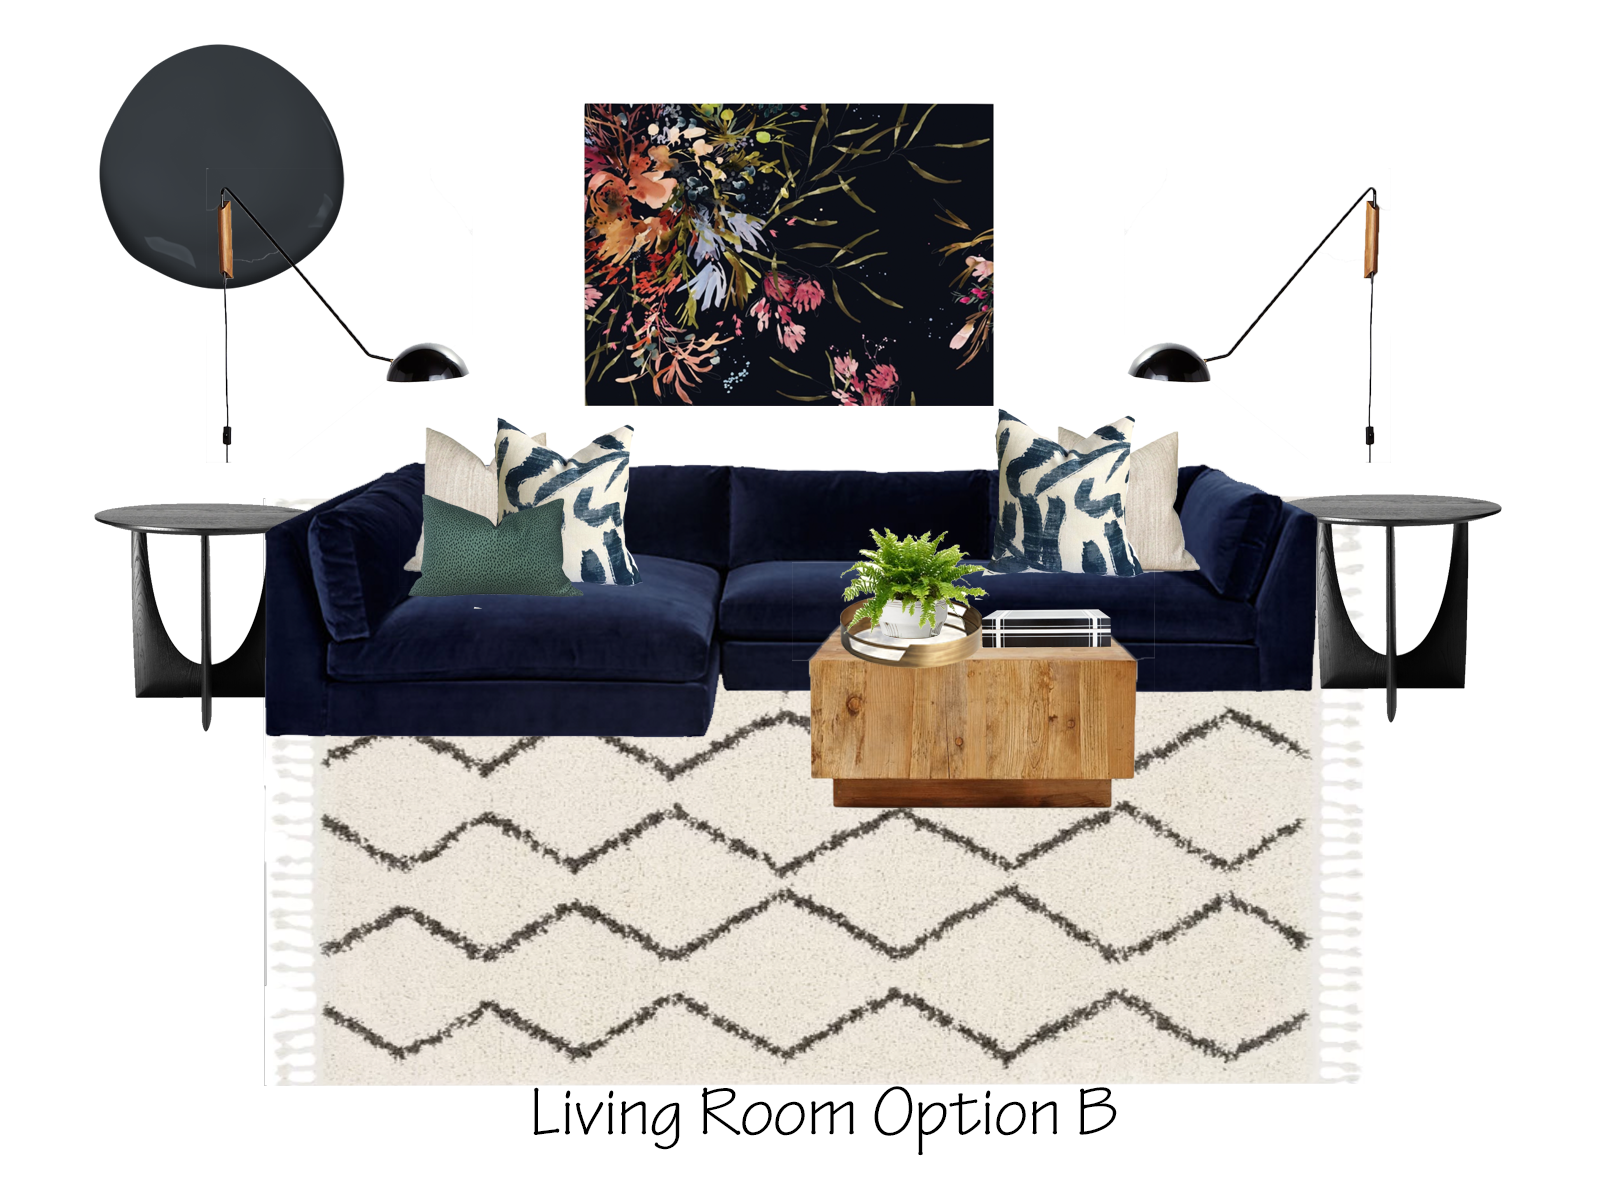 Eclectic Living Room Design Option B